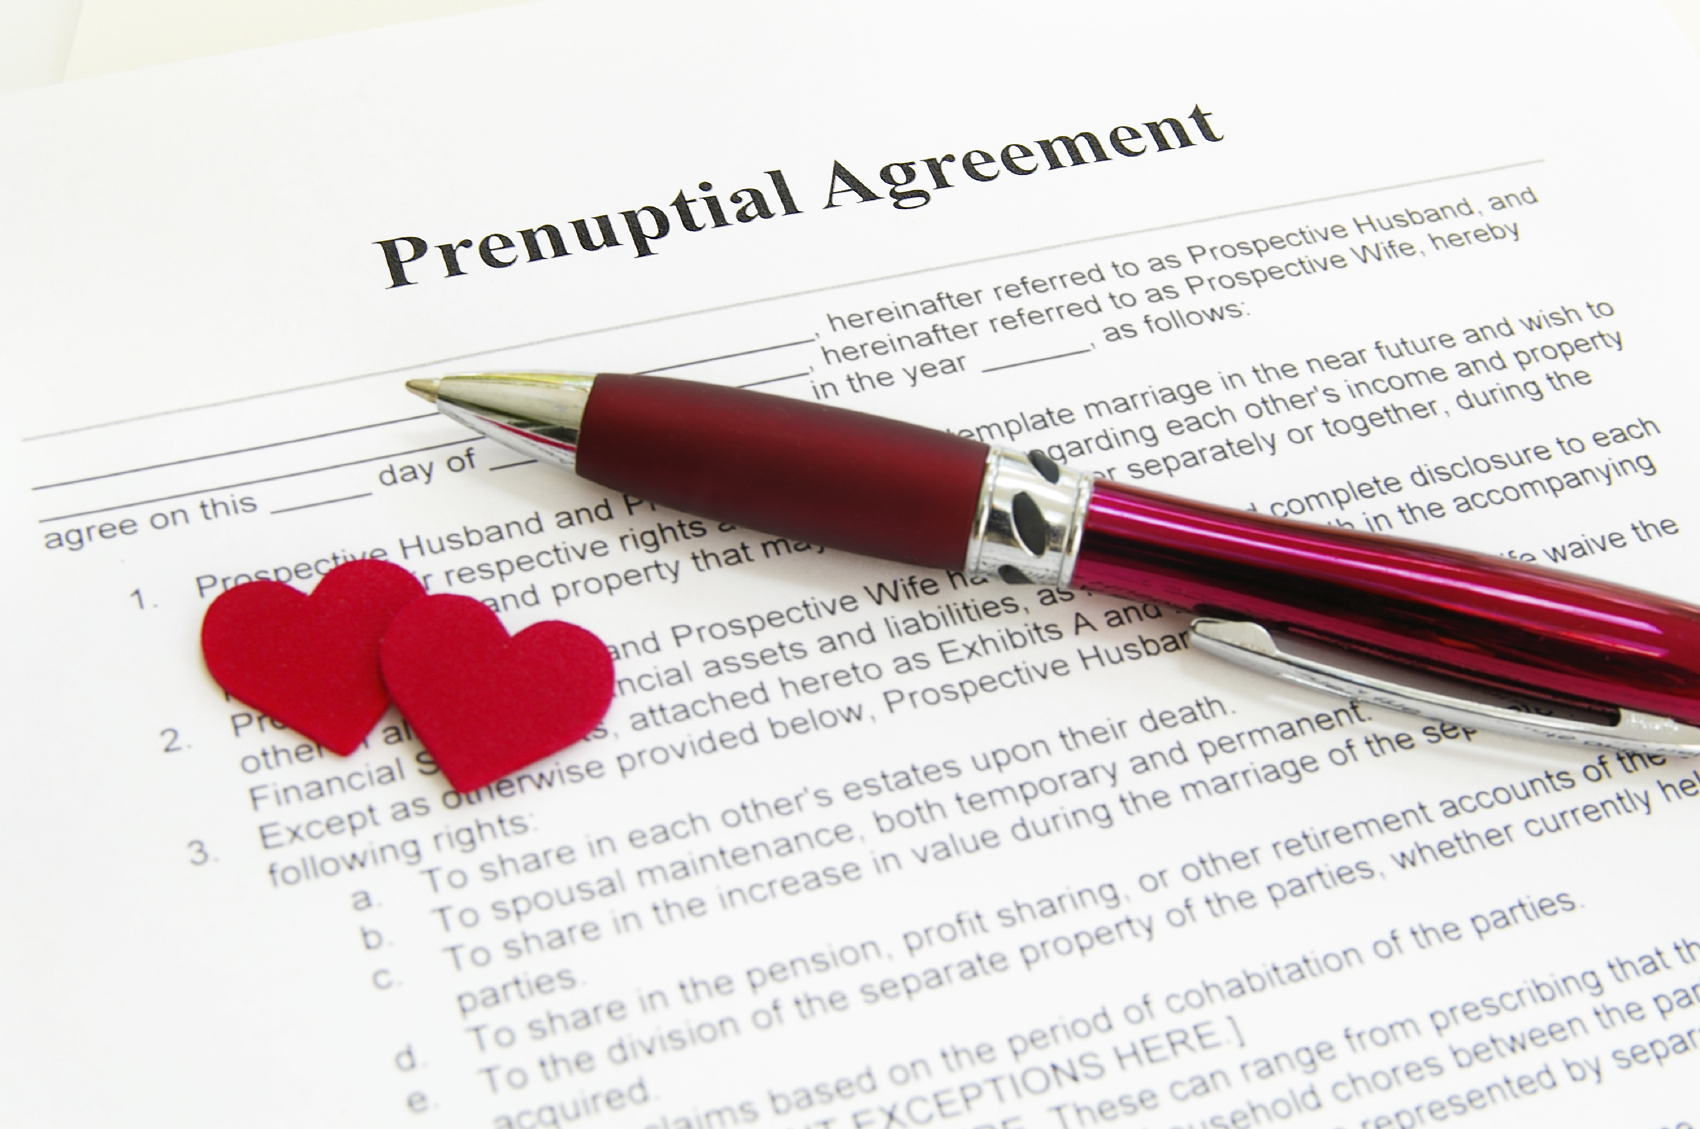 Prenuptial Agreements: Why Women Need Them